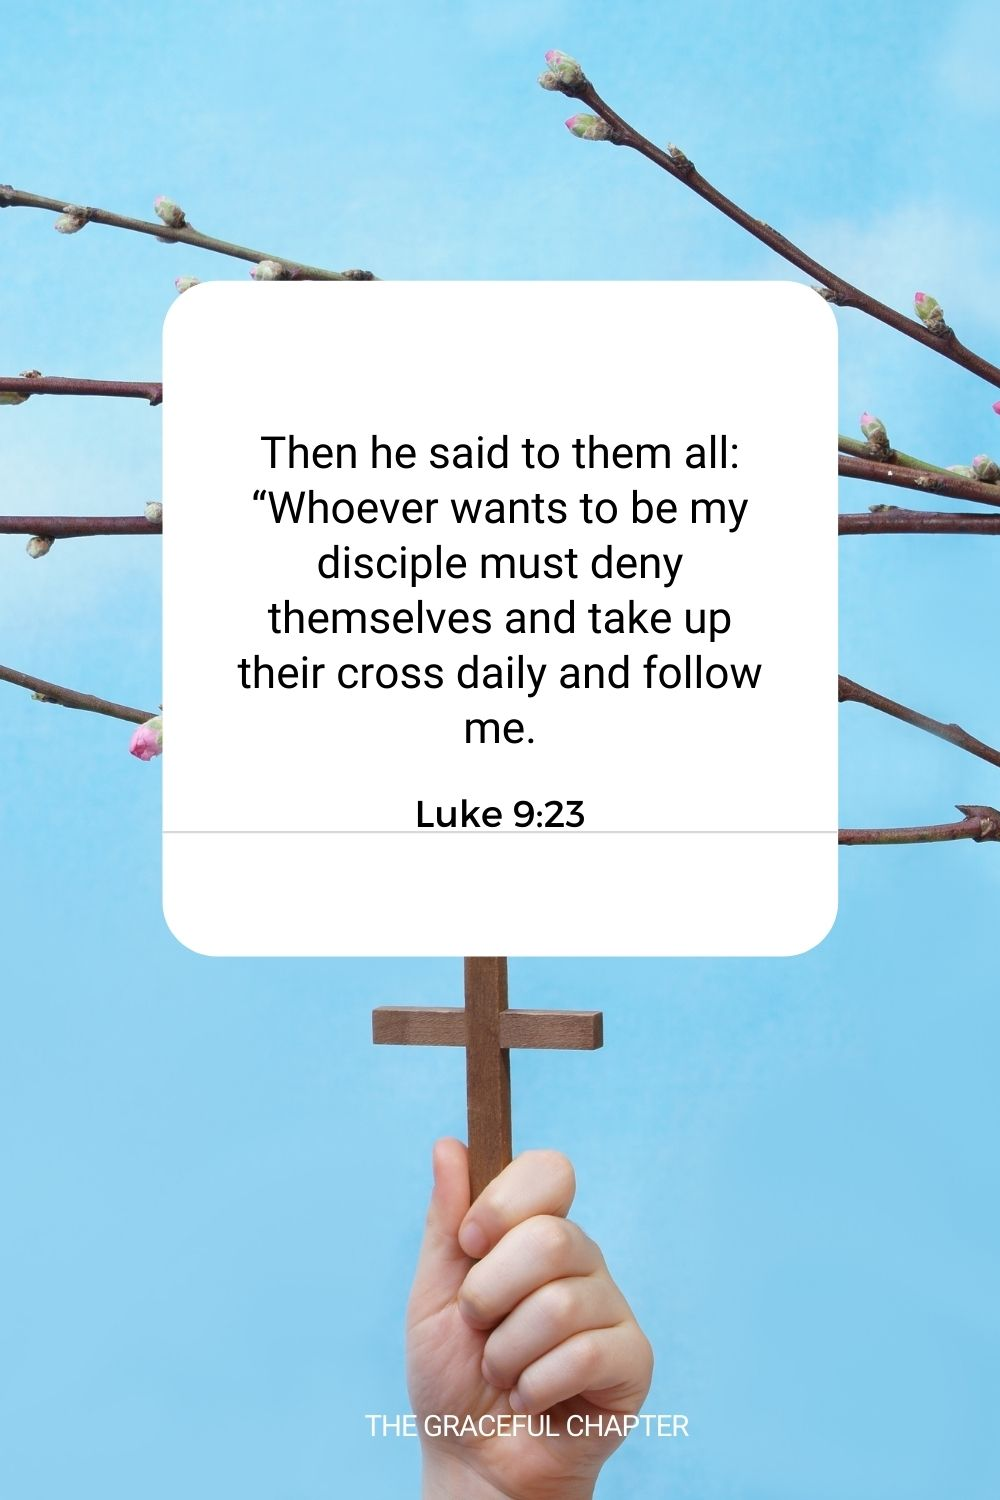 """Then he said to them all: """"Whoever wants to be my disciple must deny themselves and take up their cross daily and follow me. Luke 9:23"""